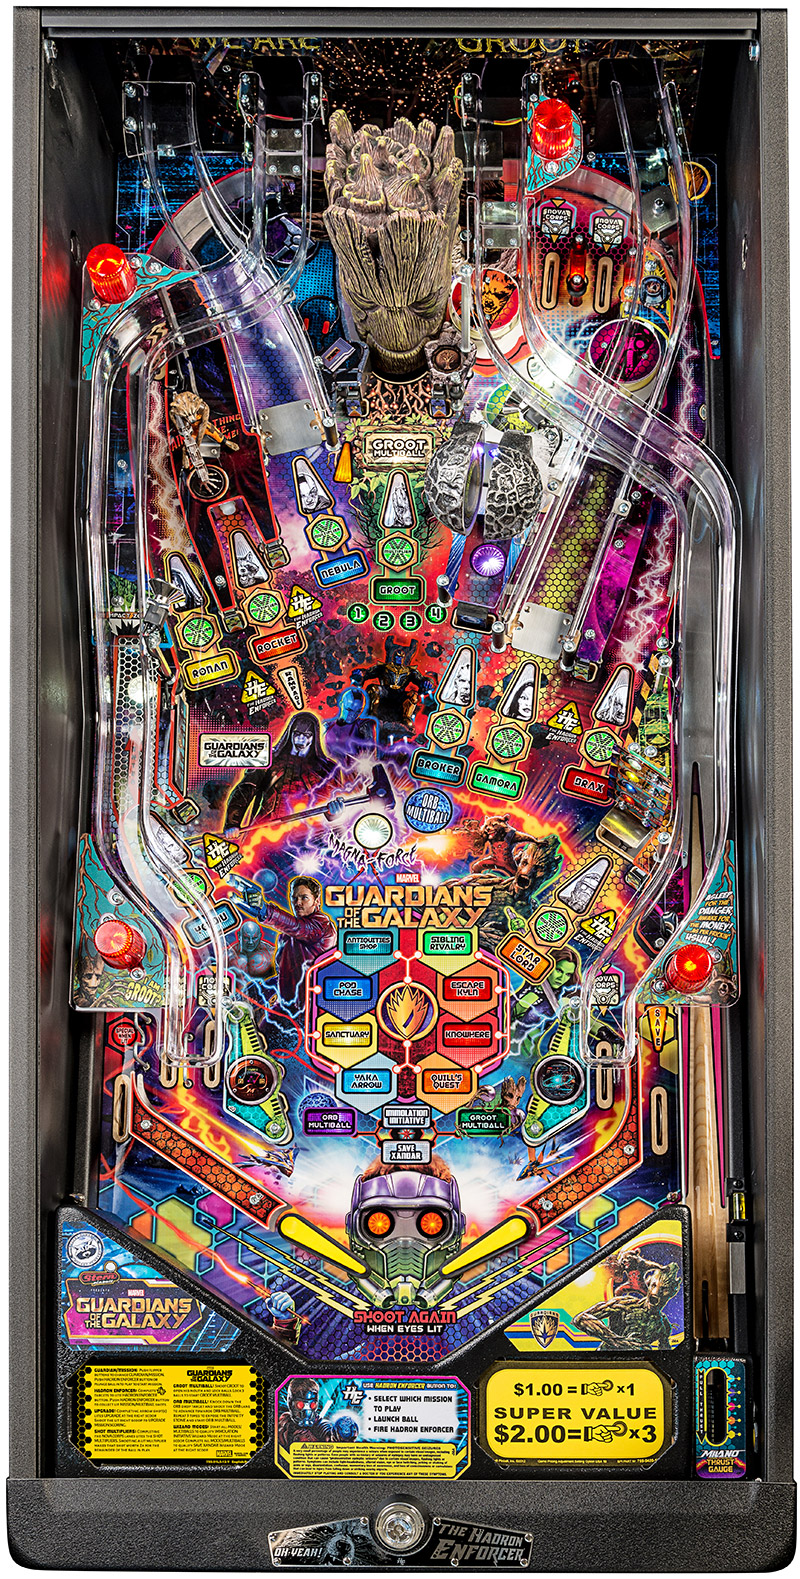 GUARDIANS OF THE GALAXY REVEALED - Pinball Nirvana